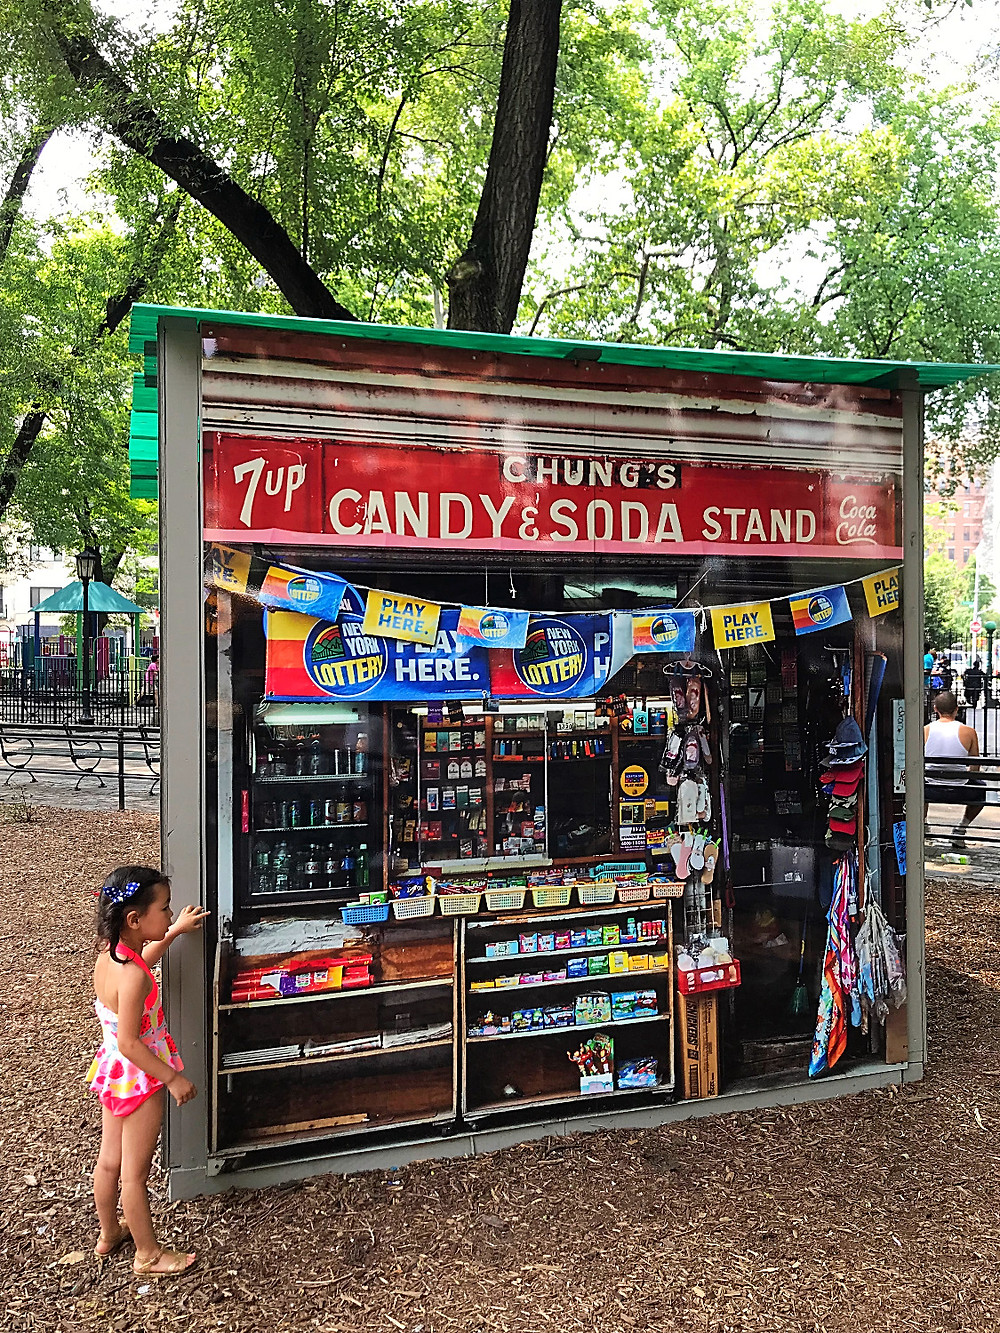 Seward Park, Mom and Pops of the LES, James and Karla, James and Karla Murray, Katz's Deli, Store Fronts of NYC, NYC playgrounds, NYC summer, Chinatown playgrounds, Lower East Side playgrounds, public art, Curious G and Me, NYC bodega